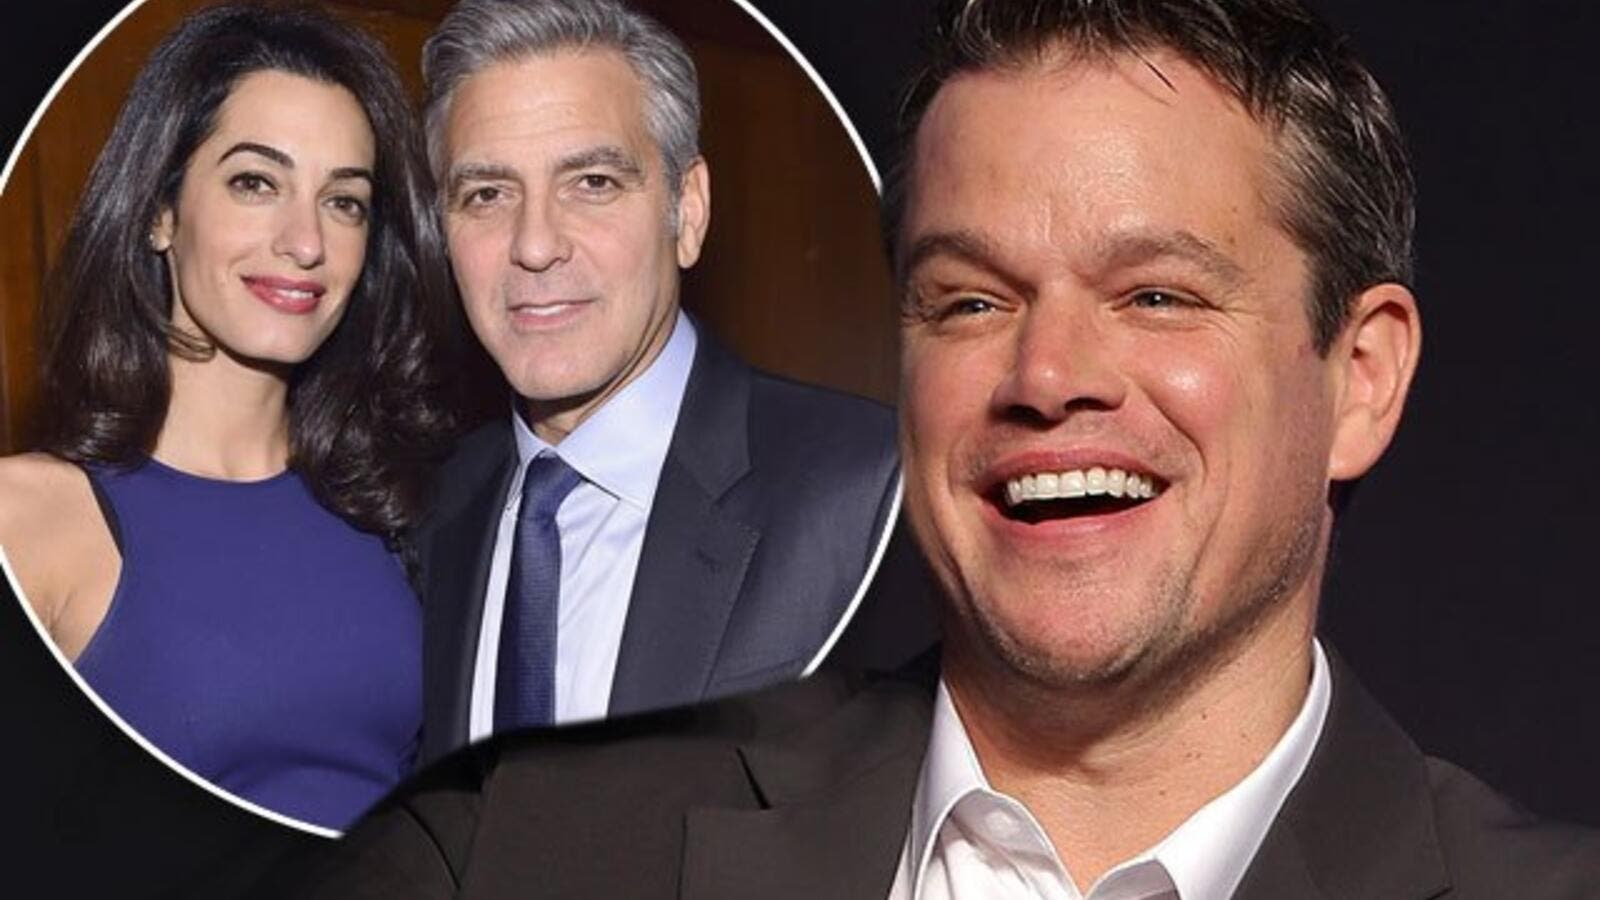 George and Amal are expecting twins in June. (Radar Online)